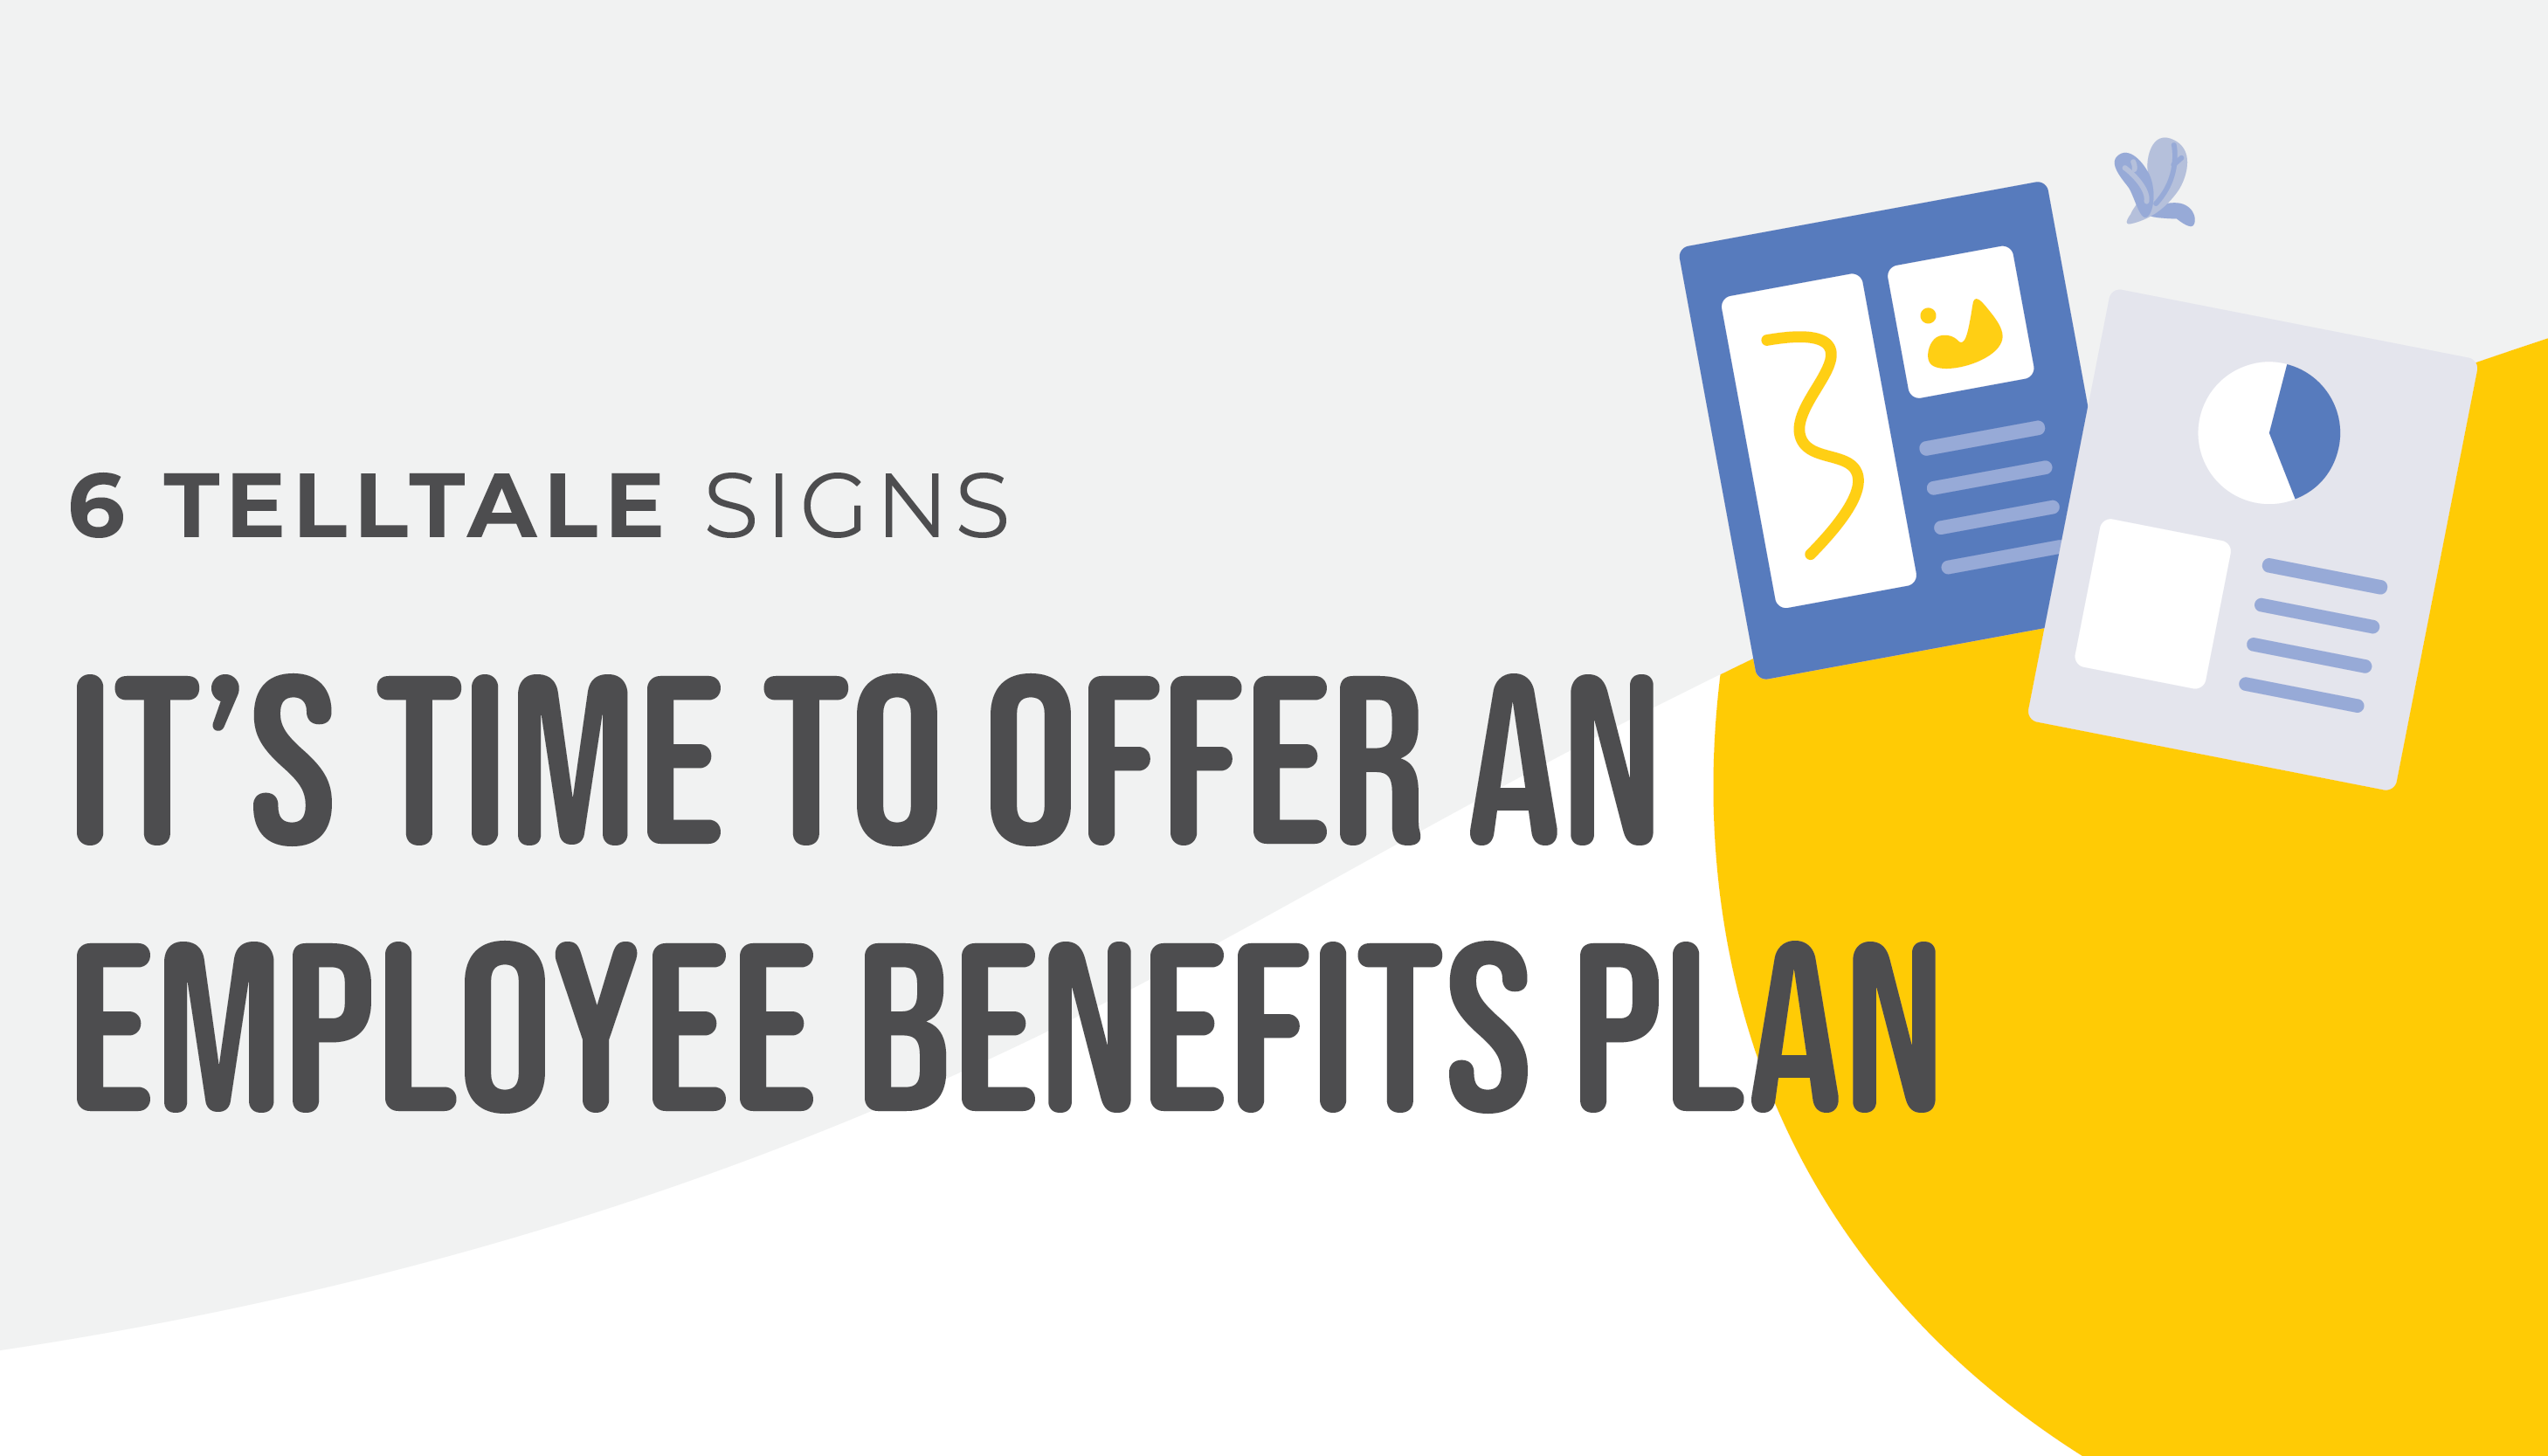 Six telltale signs it's time to offer an employee benefits plan